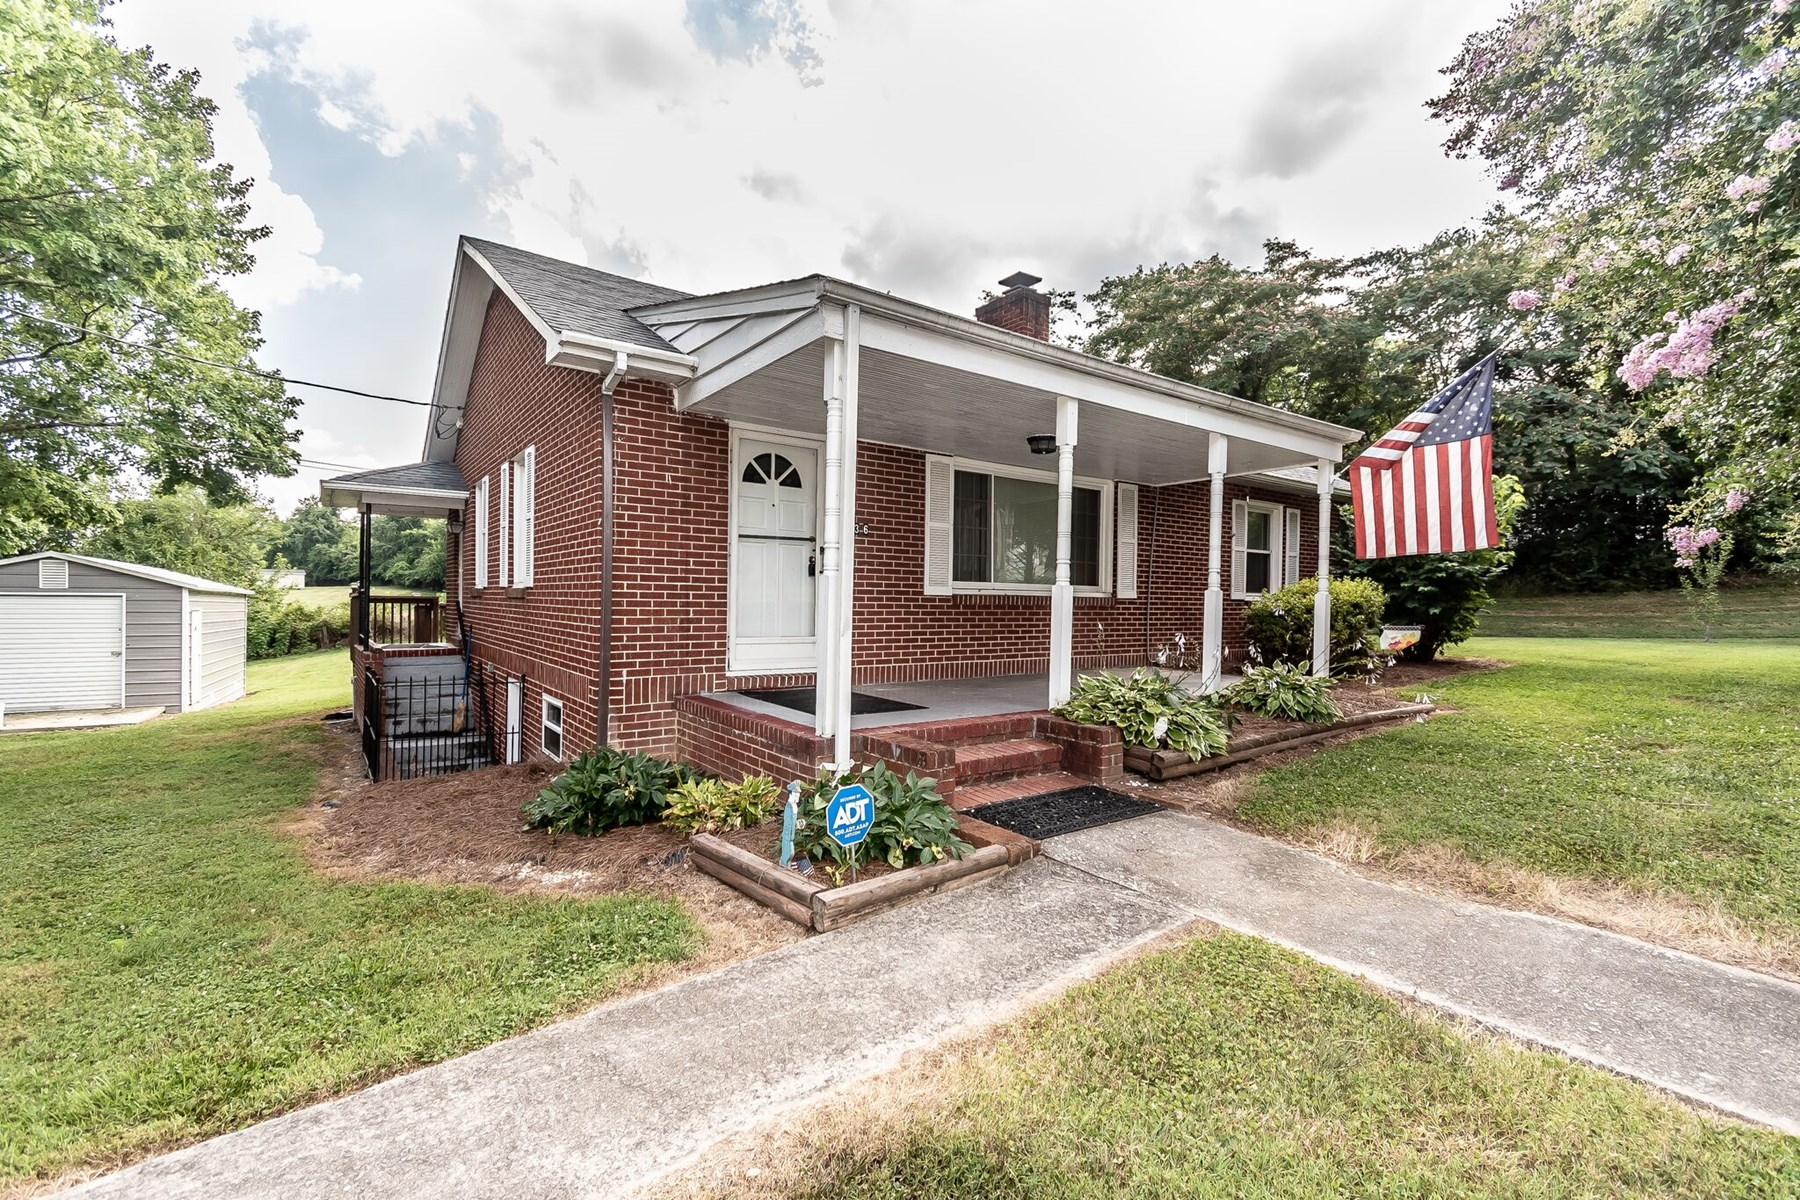 Home for sale in Mount Airy NC